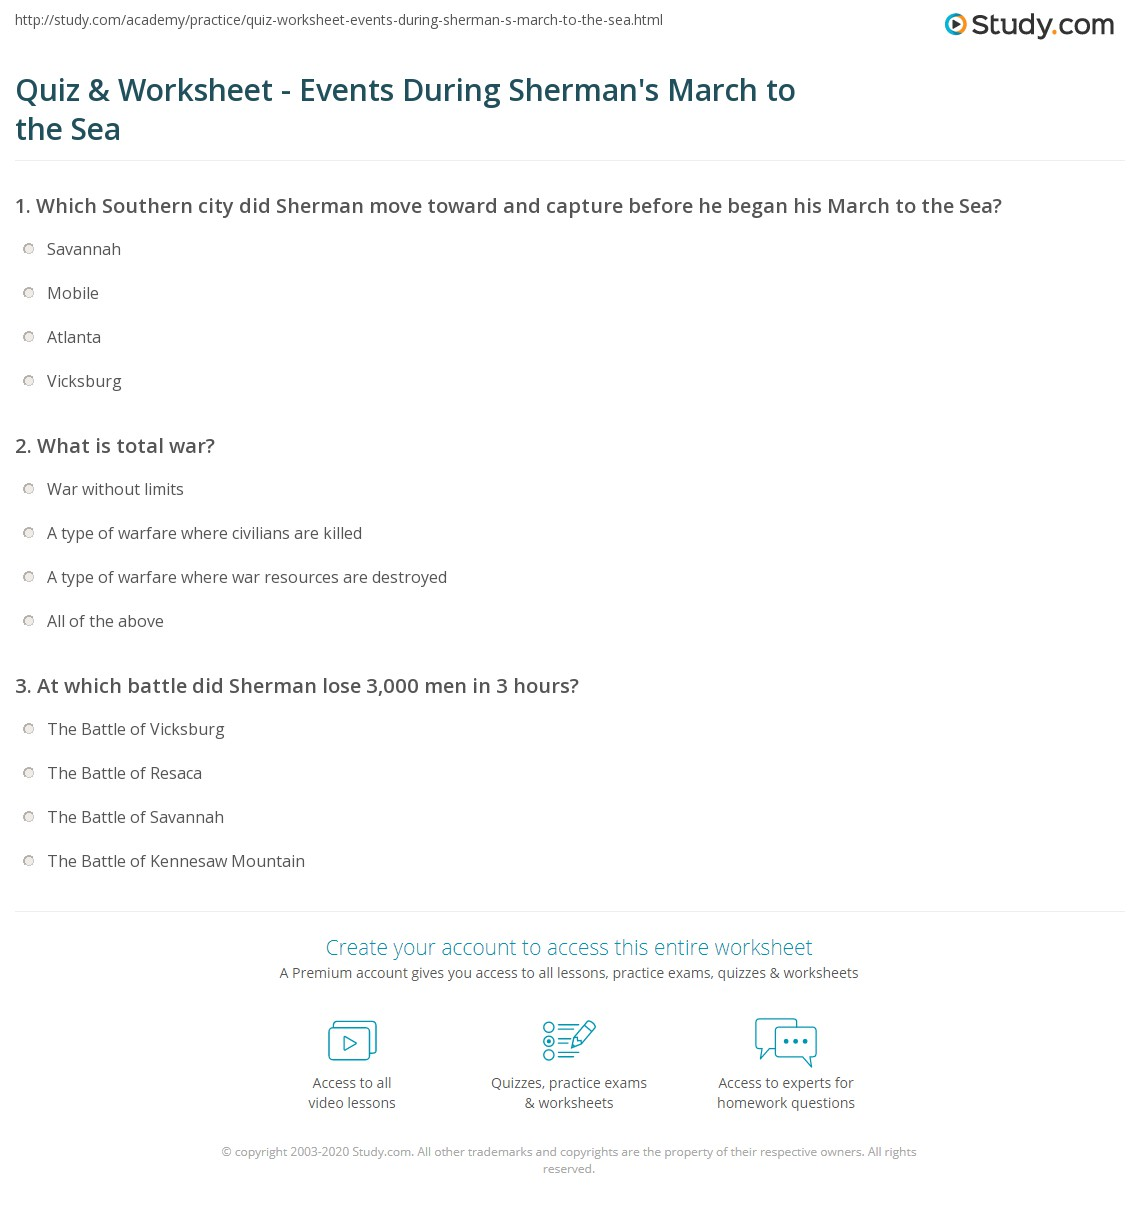 Quiz Worksheet Events During Shermans March to the Sea – Lost at Sea Worksheet